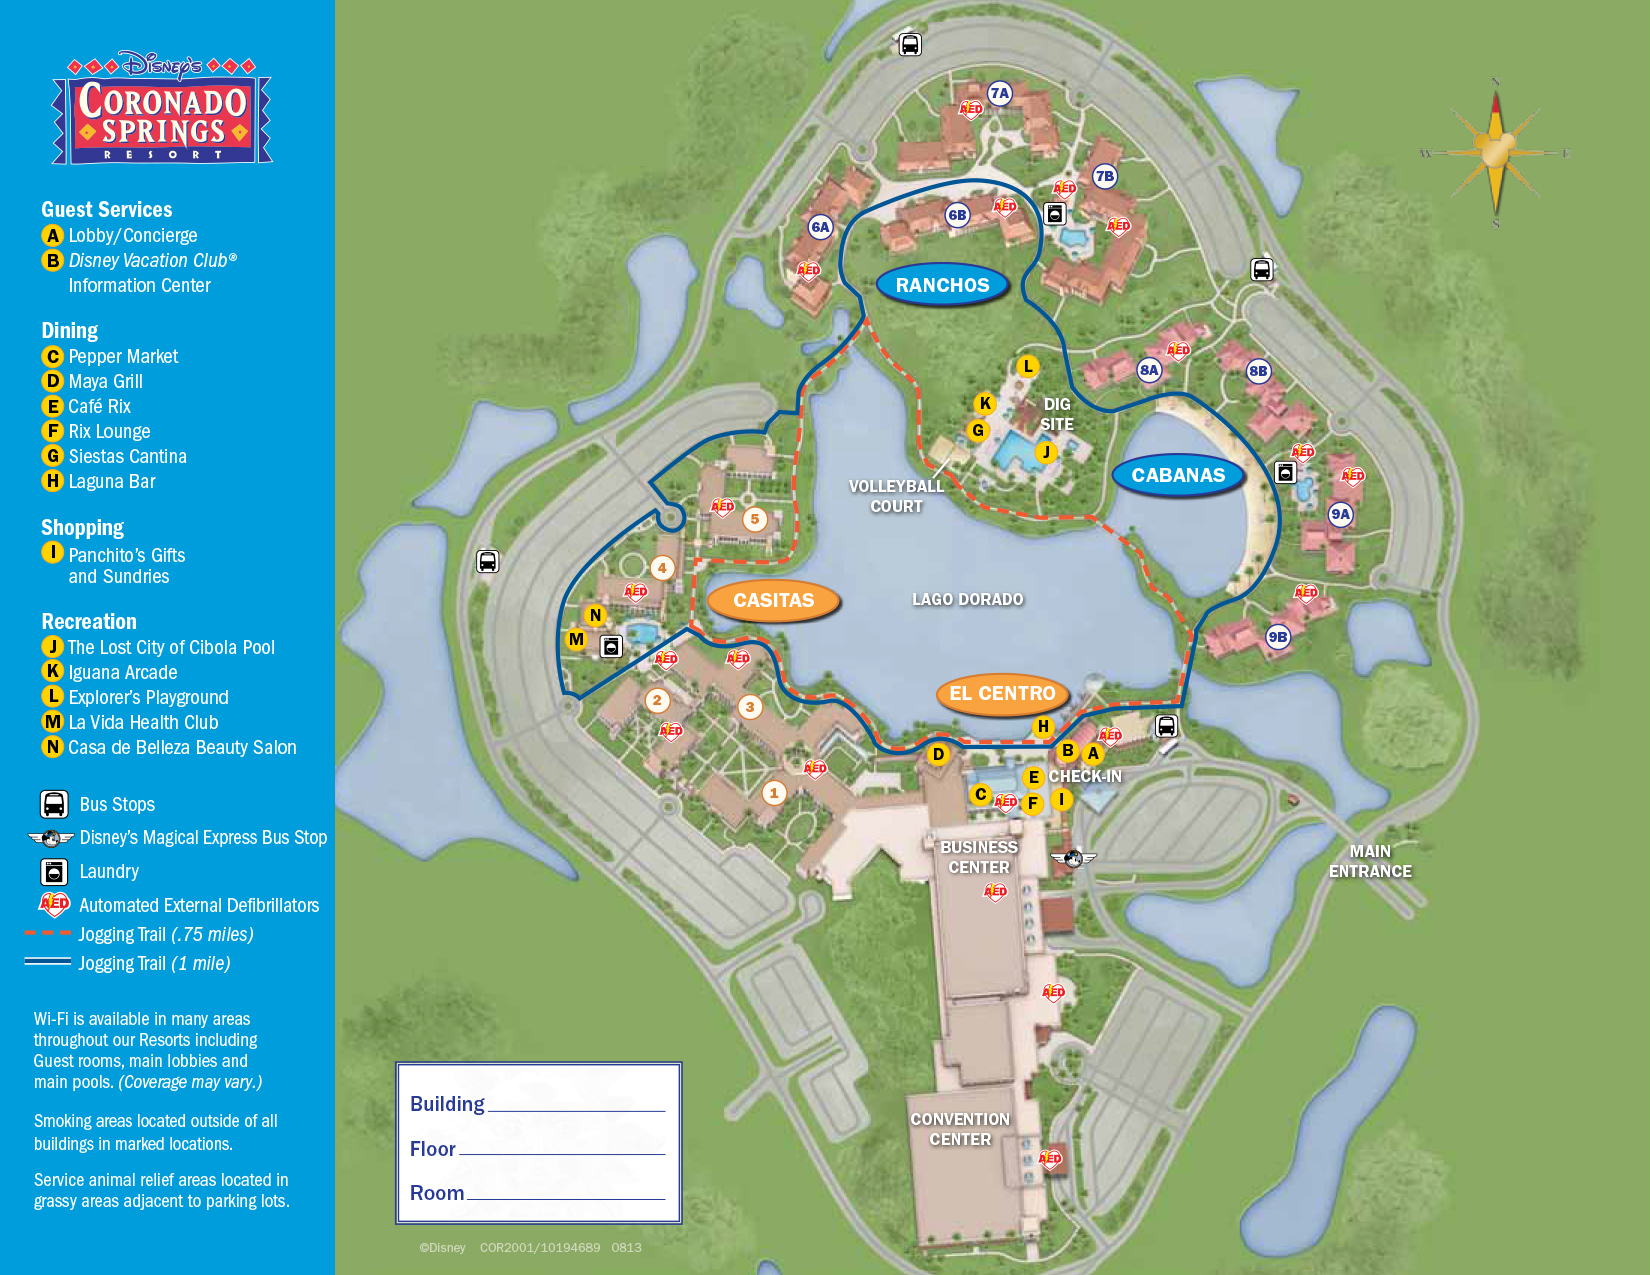 Coronado Springs Map Coronado Springs Resort Map | KennythePirate.com